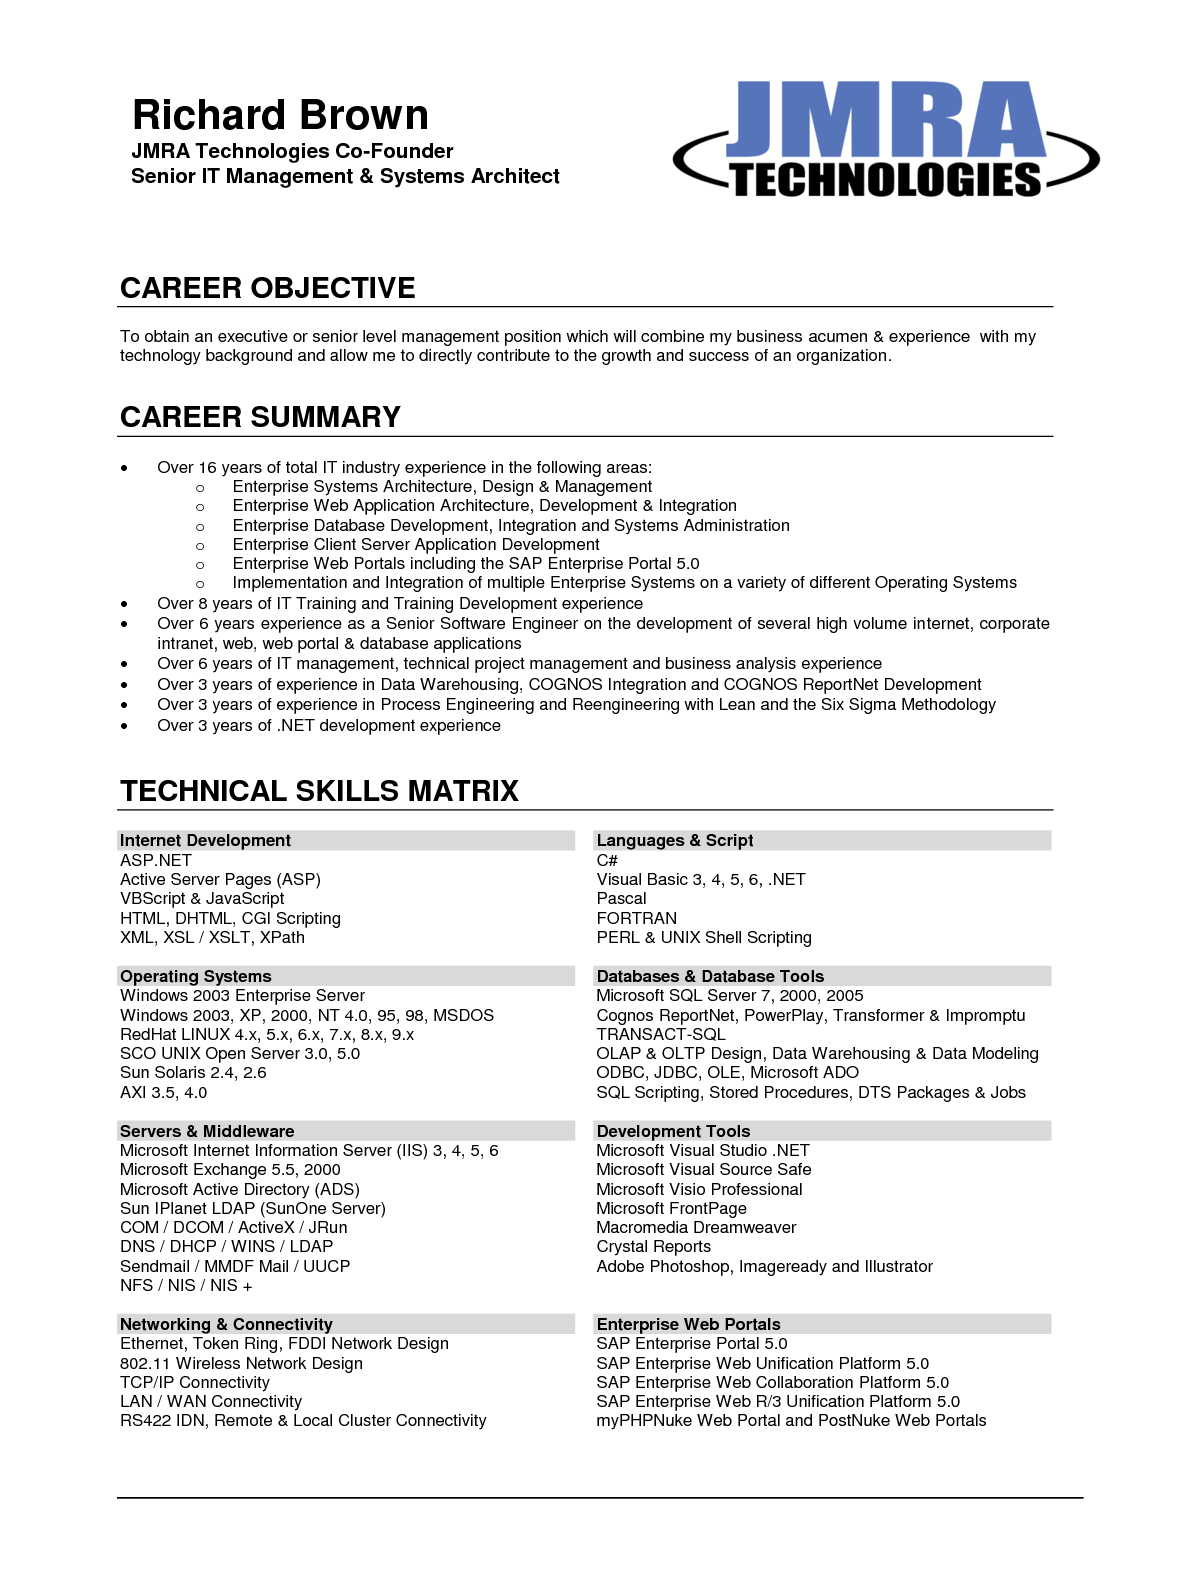 1000 ideias sobre career objectives for resume no pinterest dicas de currculo perguntas de entrevista e cartas de apresentao good objectives in a resume